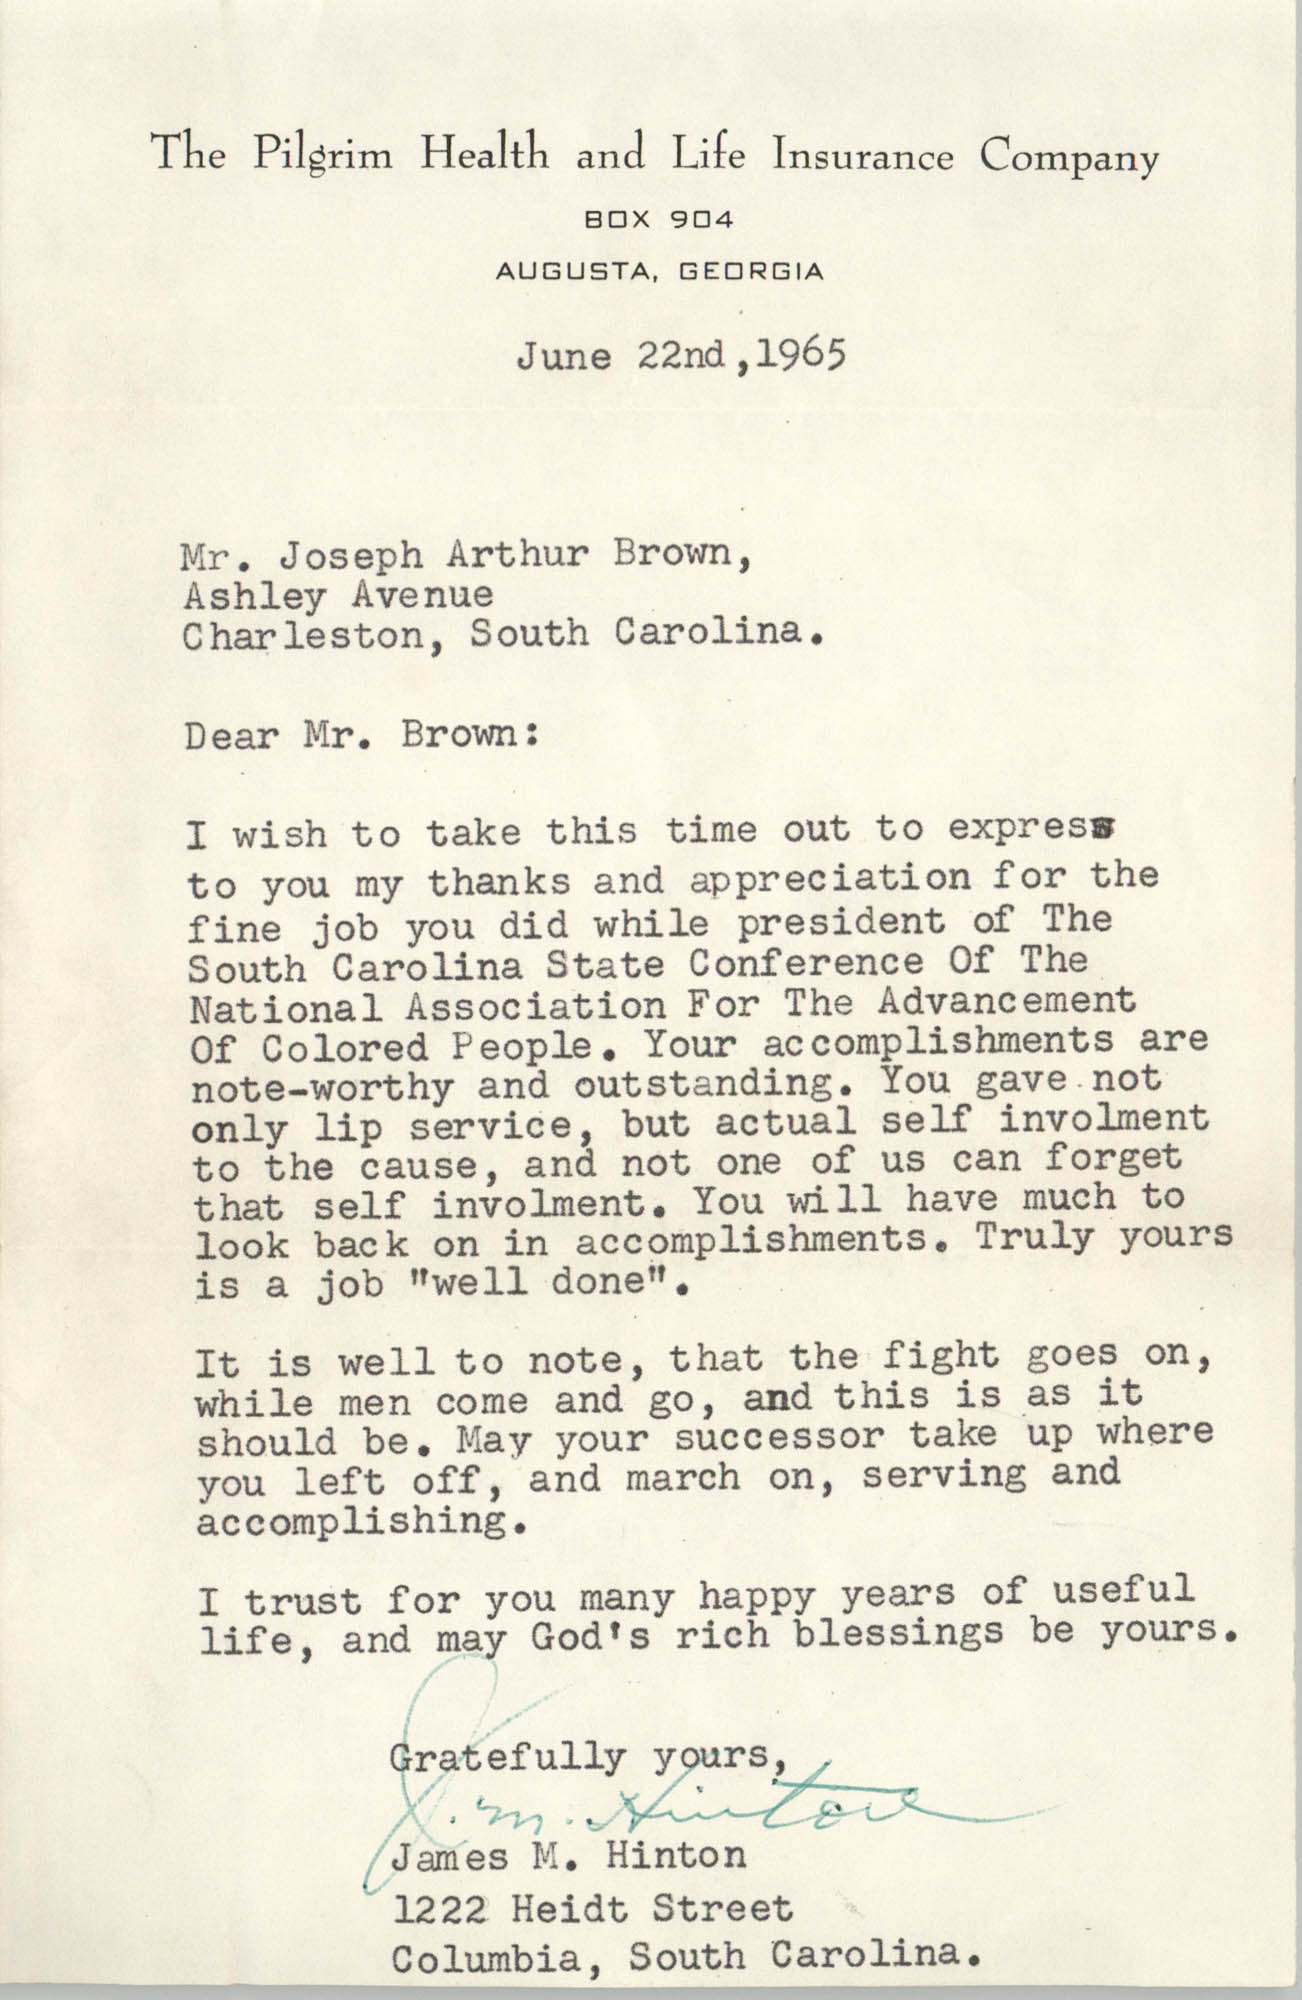 Letter from James M. Hinton to J. Arthur Brown, June 22, 1965